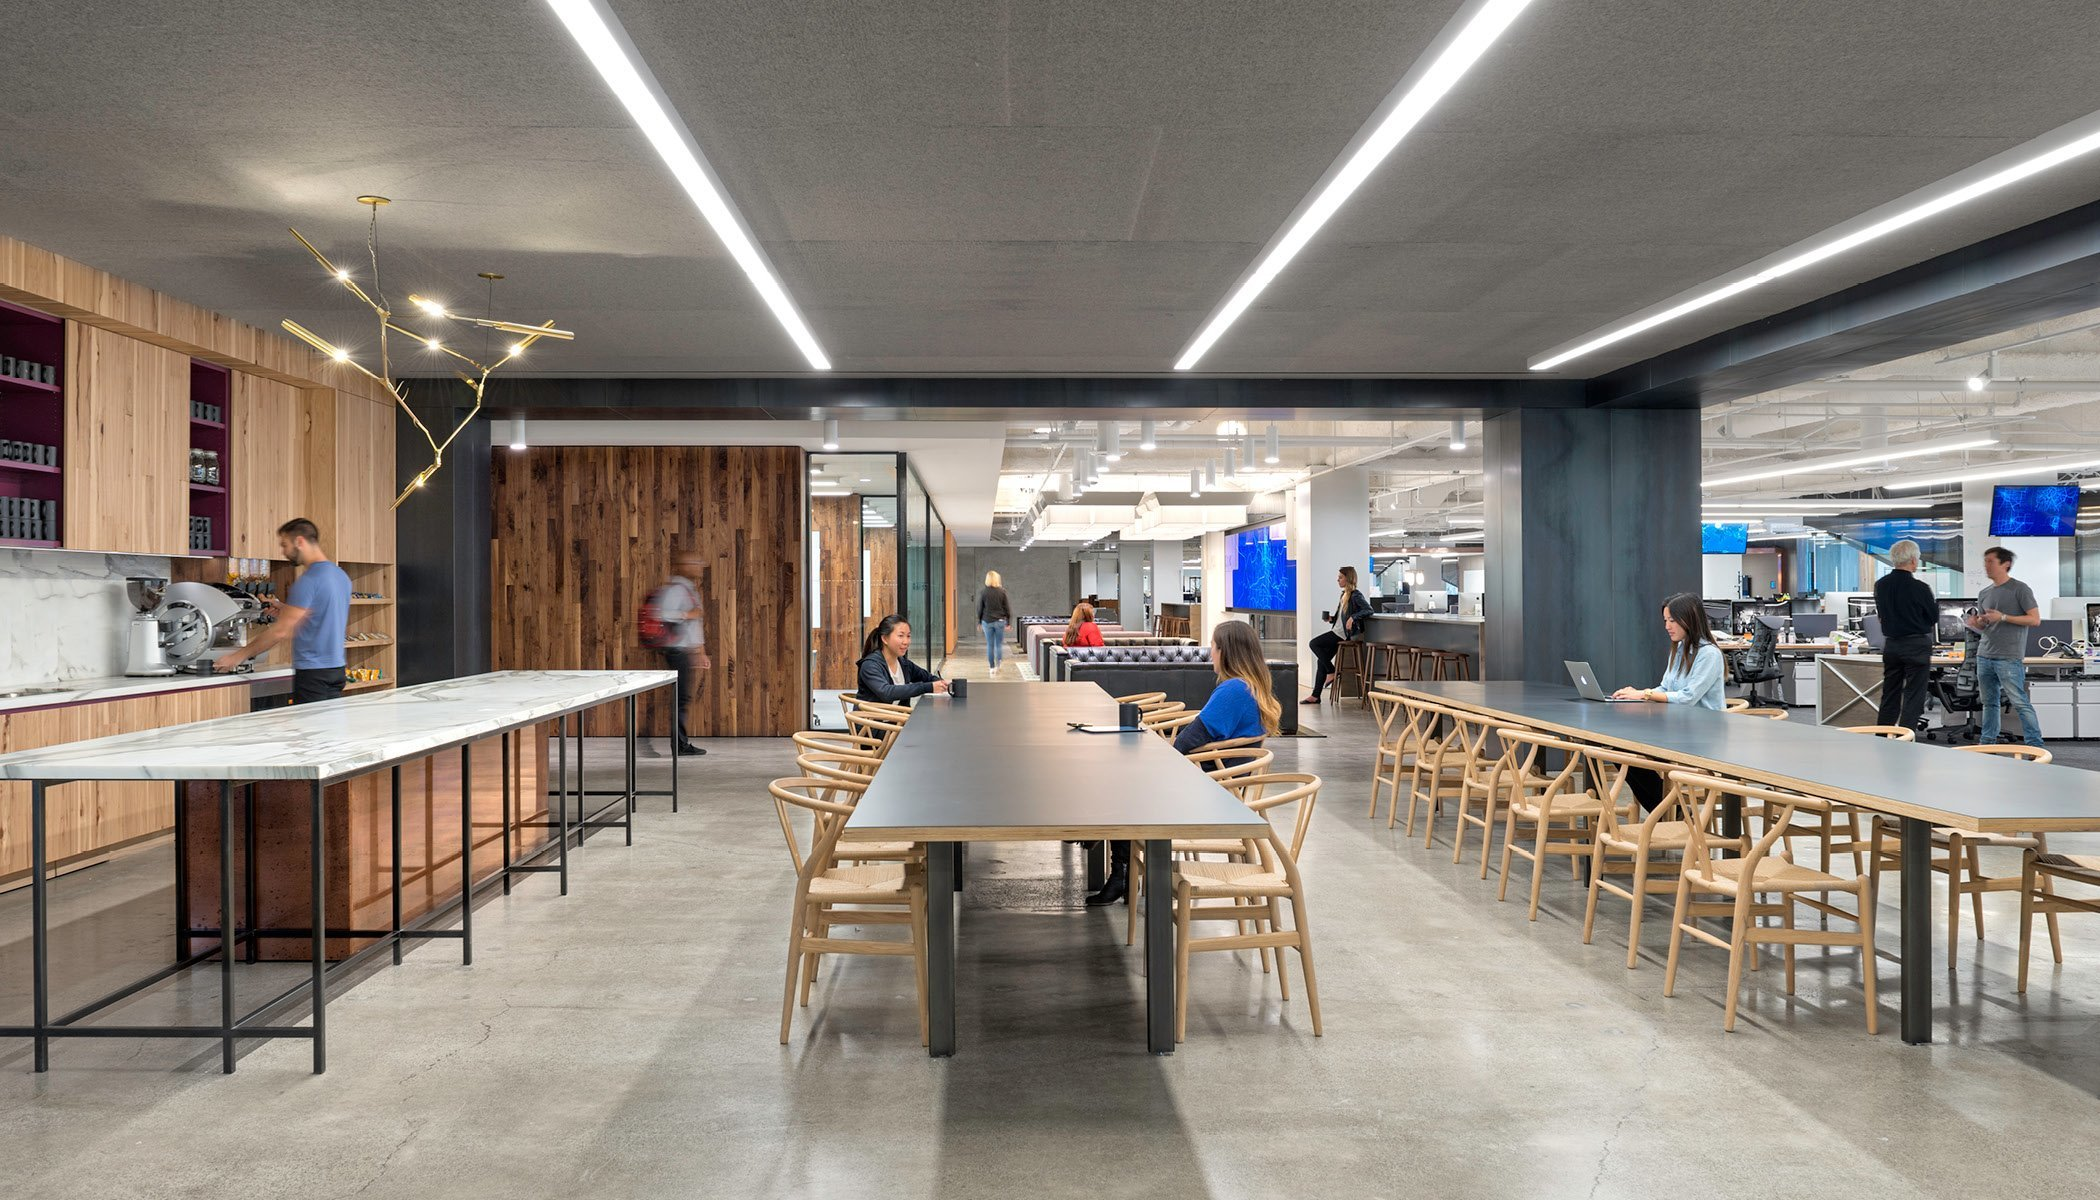 Inside uber s new san francisco headquarters officelovin 39 for Mash studios lax